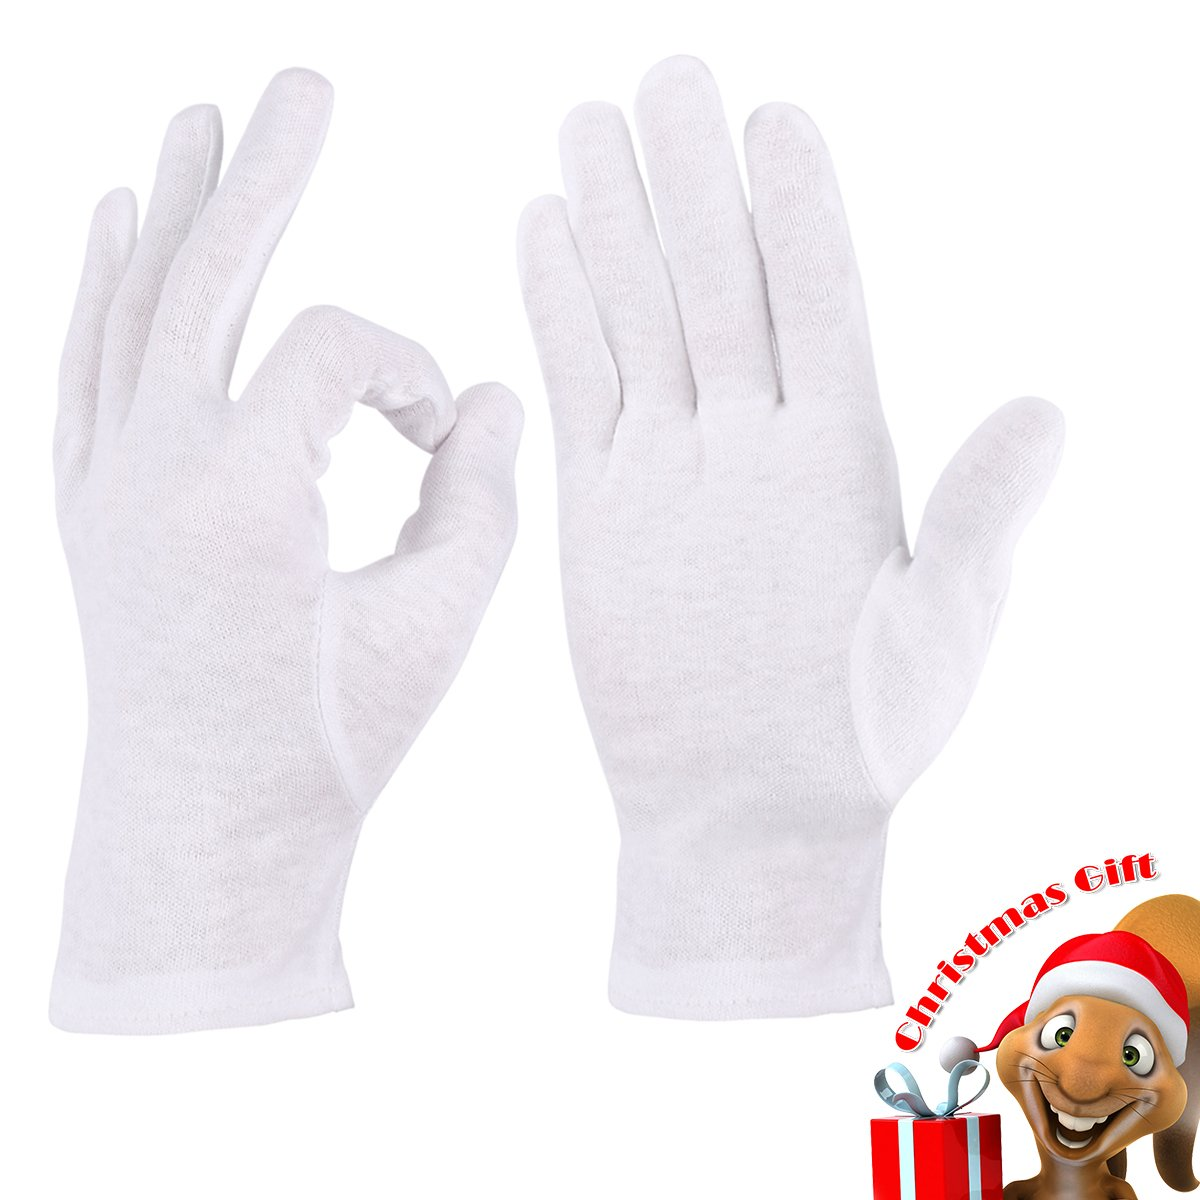 Cheap Dry Hands Gloves Find Dry Hands Gloves Deals On Line At